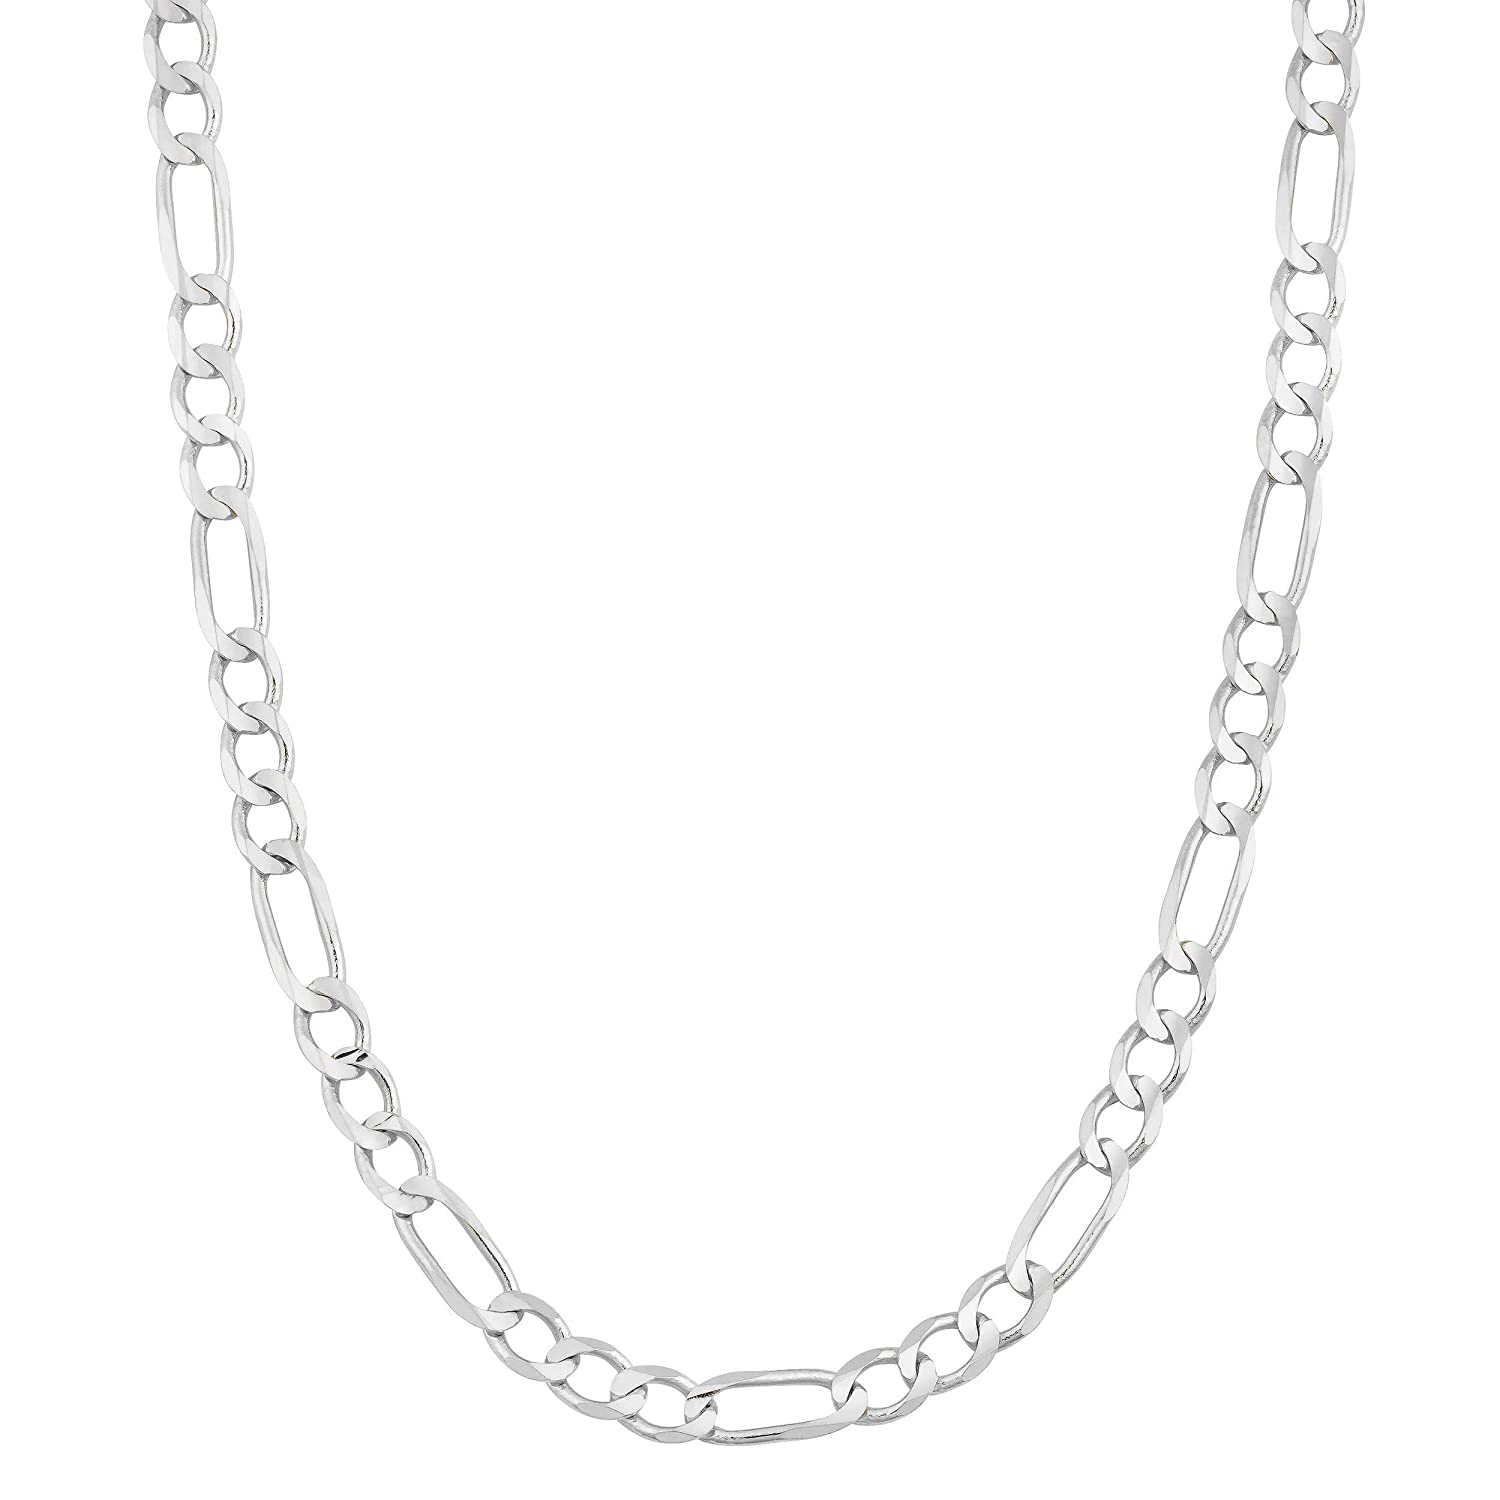 Silver Figaro Link Necklace for Men and Women18-30 4.5MM Figaro Link Chain Necklace 925 Sterling Silver 3MM 3.5MM 4MM